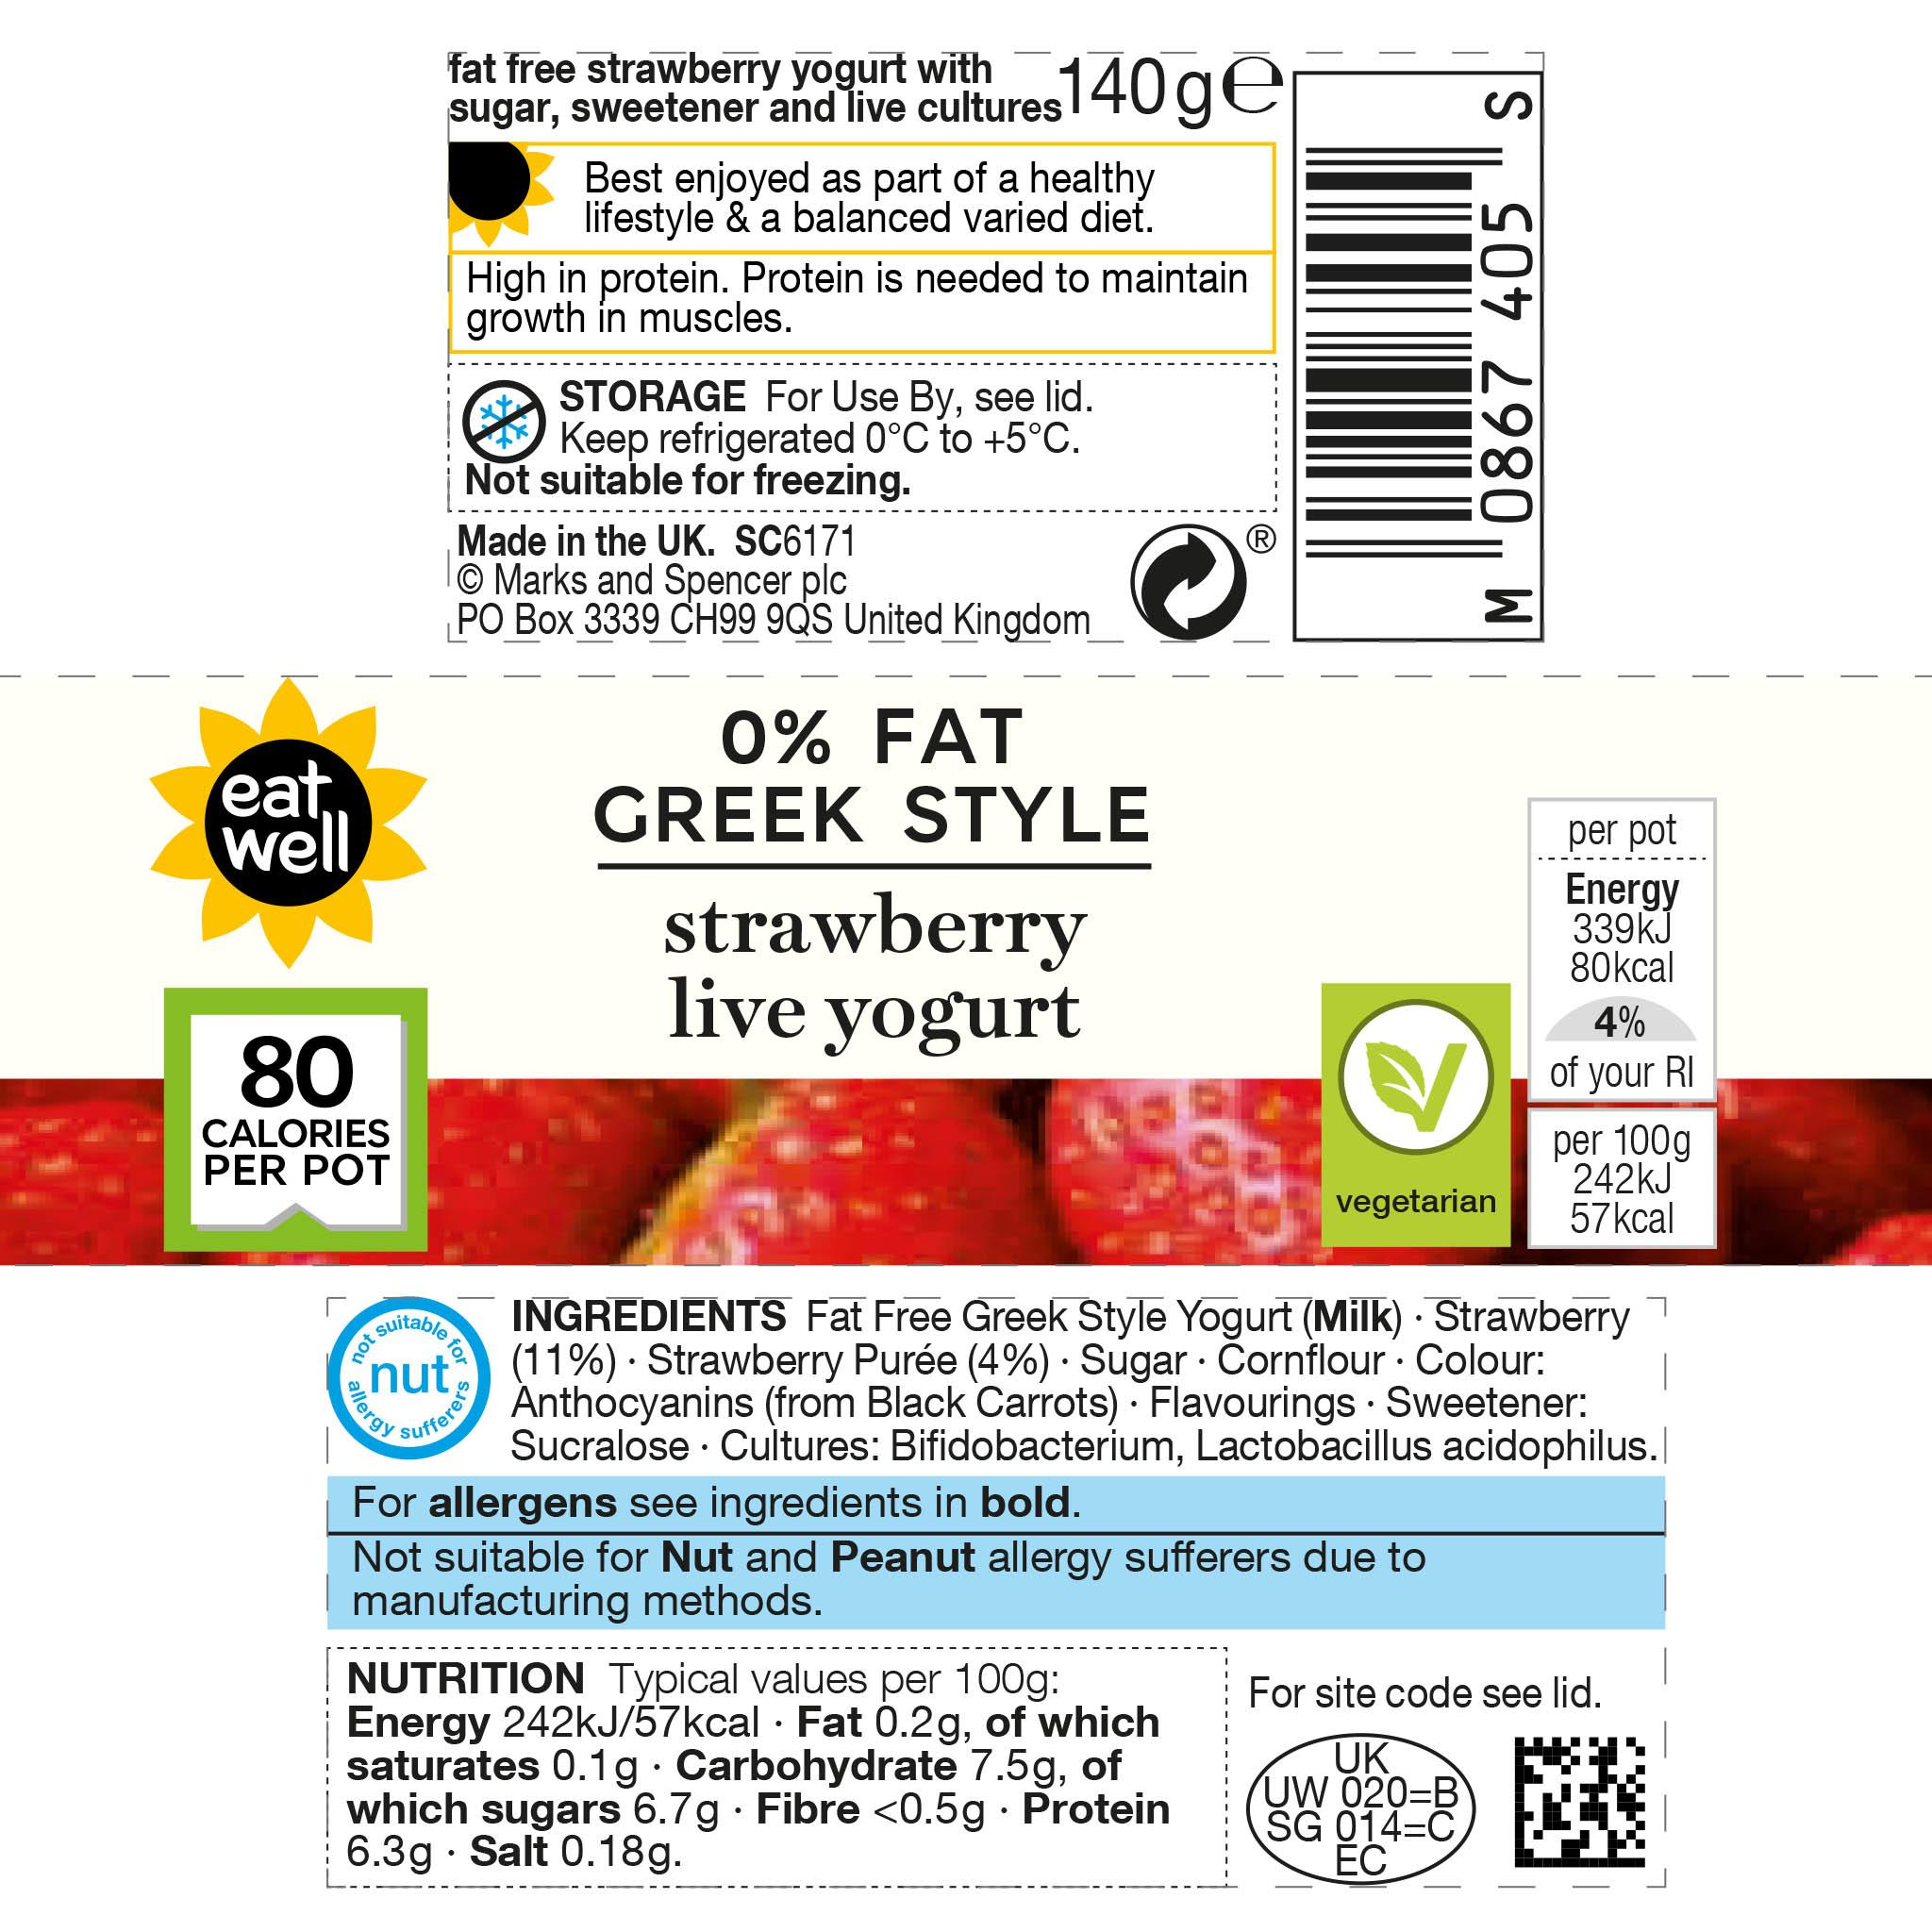 0% Fat Greek Style Strawberry Yogurt 140g Label